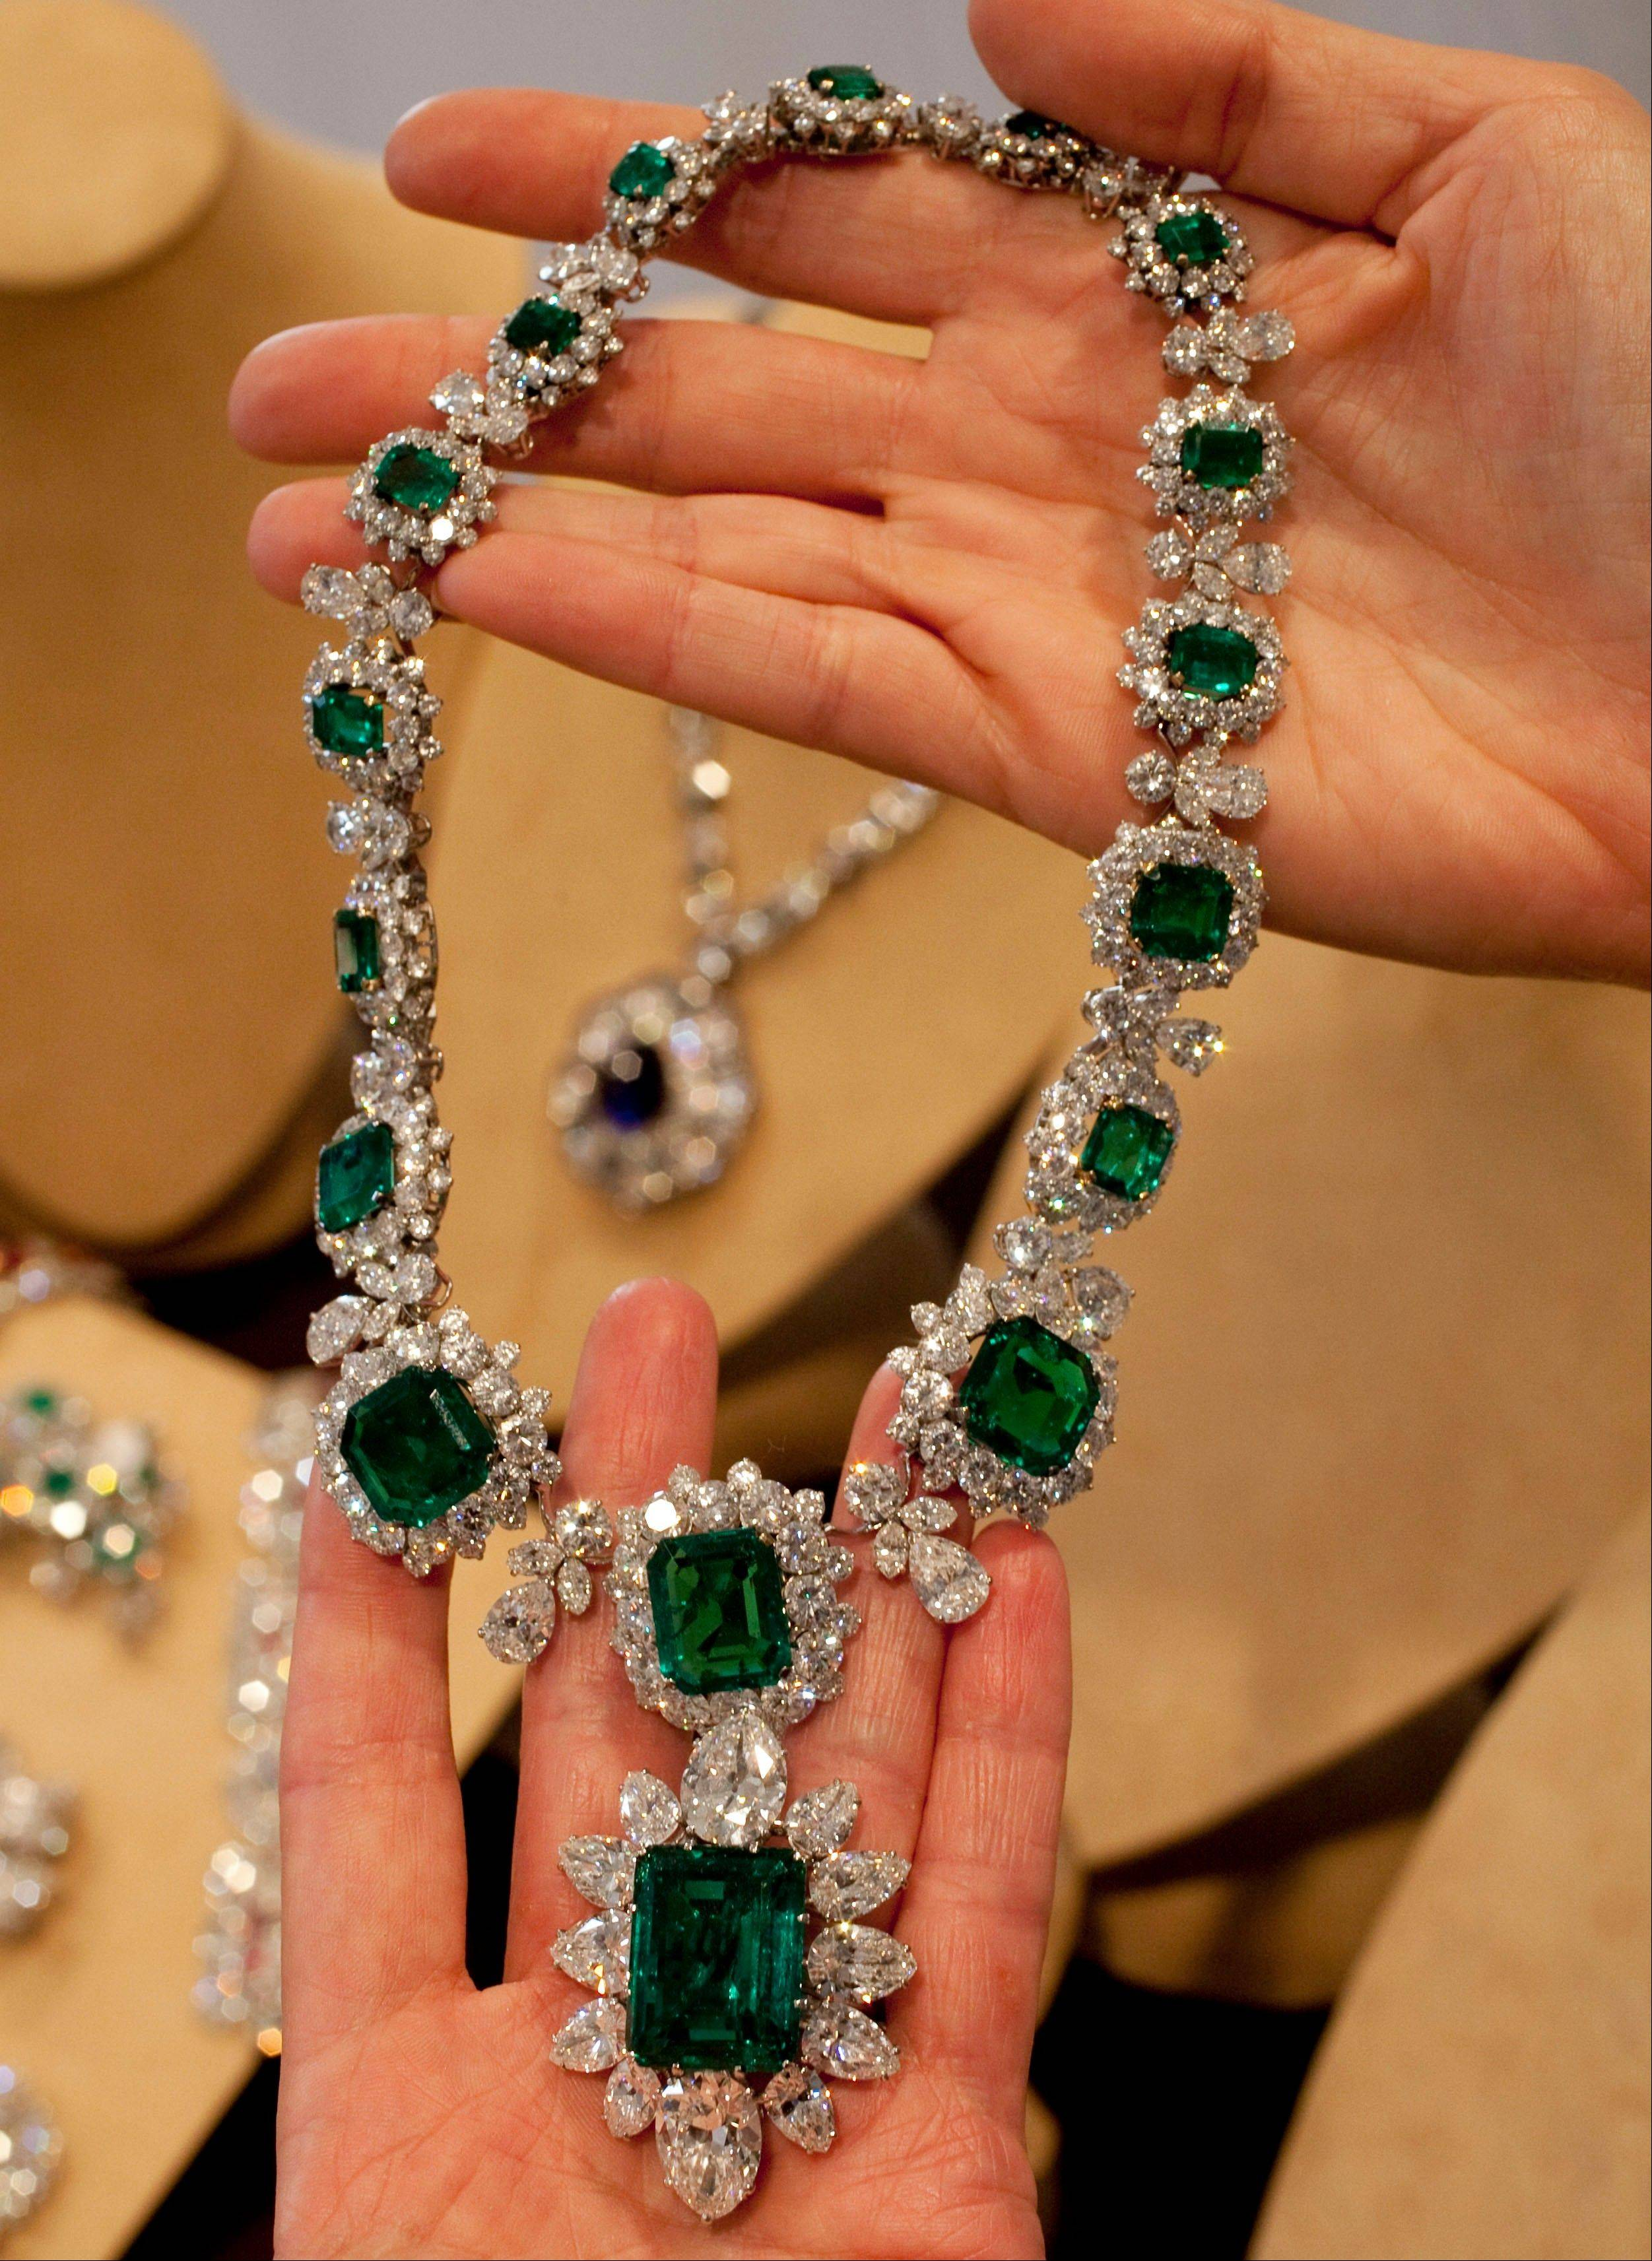 Elizabeth Taylor's emerald and diamond necklace and pendant, attached at the bottom were a gift from actor Richard Burton. Christie's auction house is selling her complete jewelry collection in New York on Dec. 13-14.